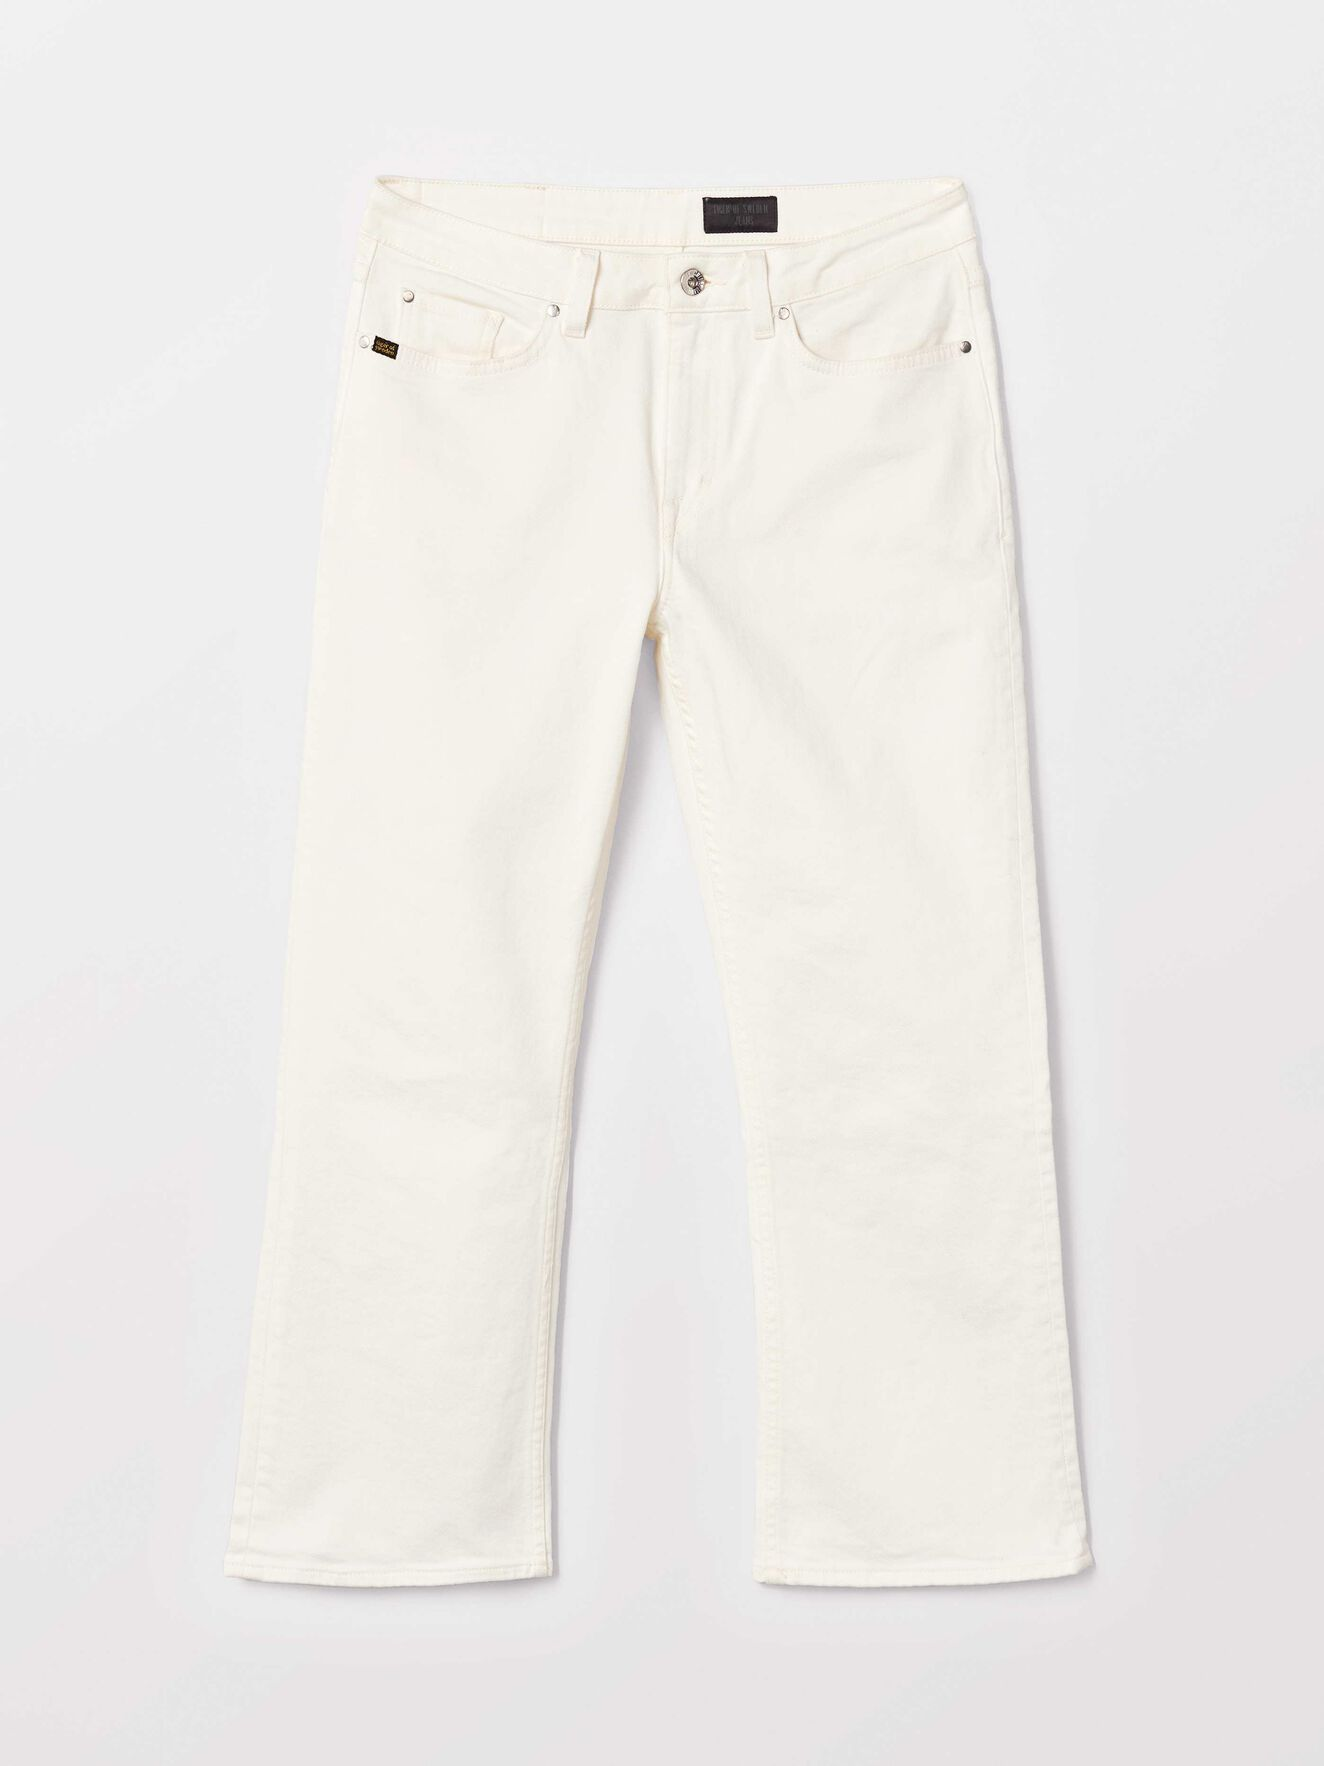 Aze Jeans in White from Tiger of Sweden